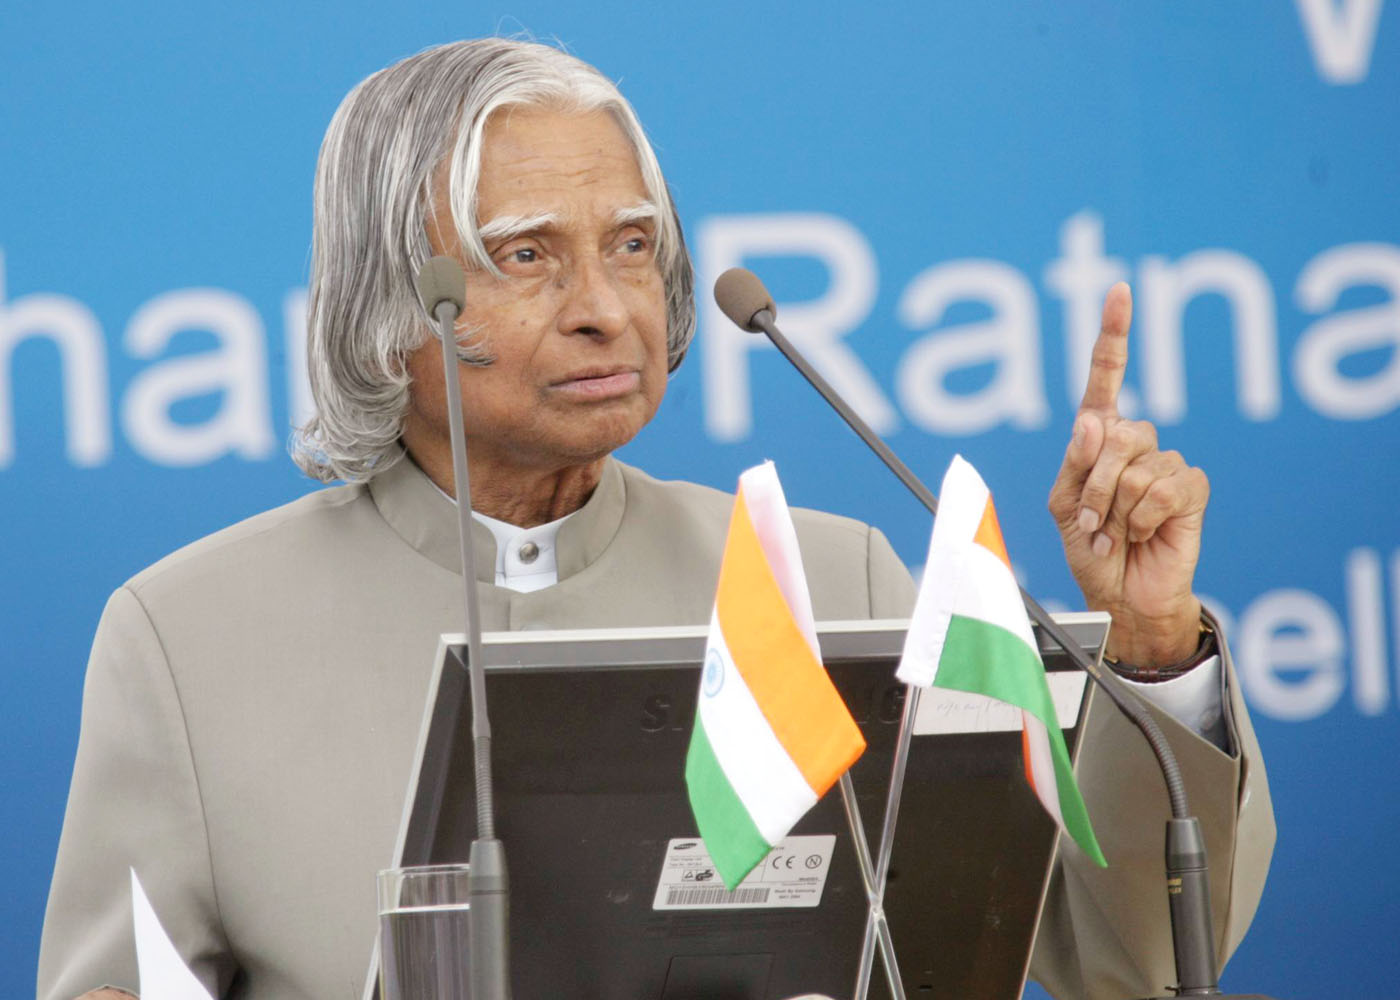 003 Essay Example Abdul Kalam My Inspiration P Exceptional In English 400 Words Hindi Full